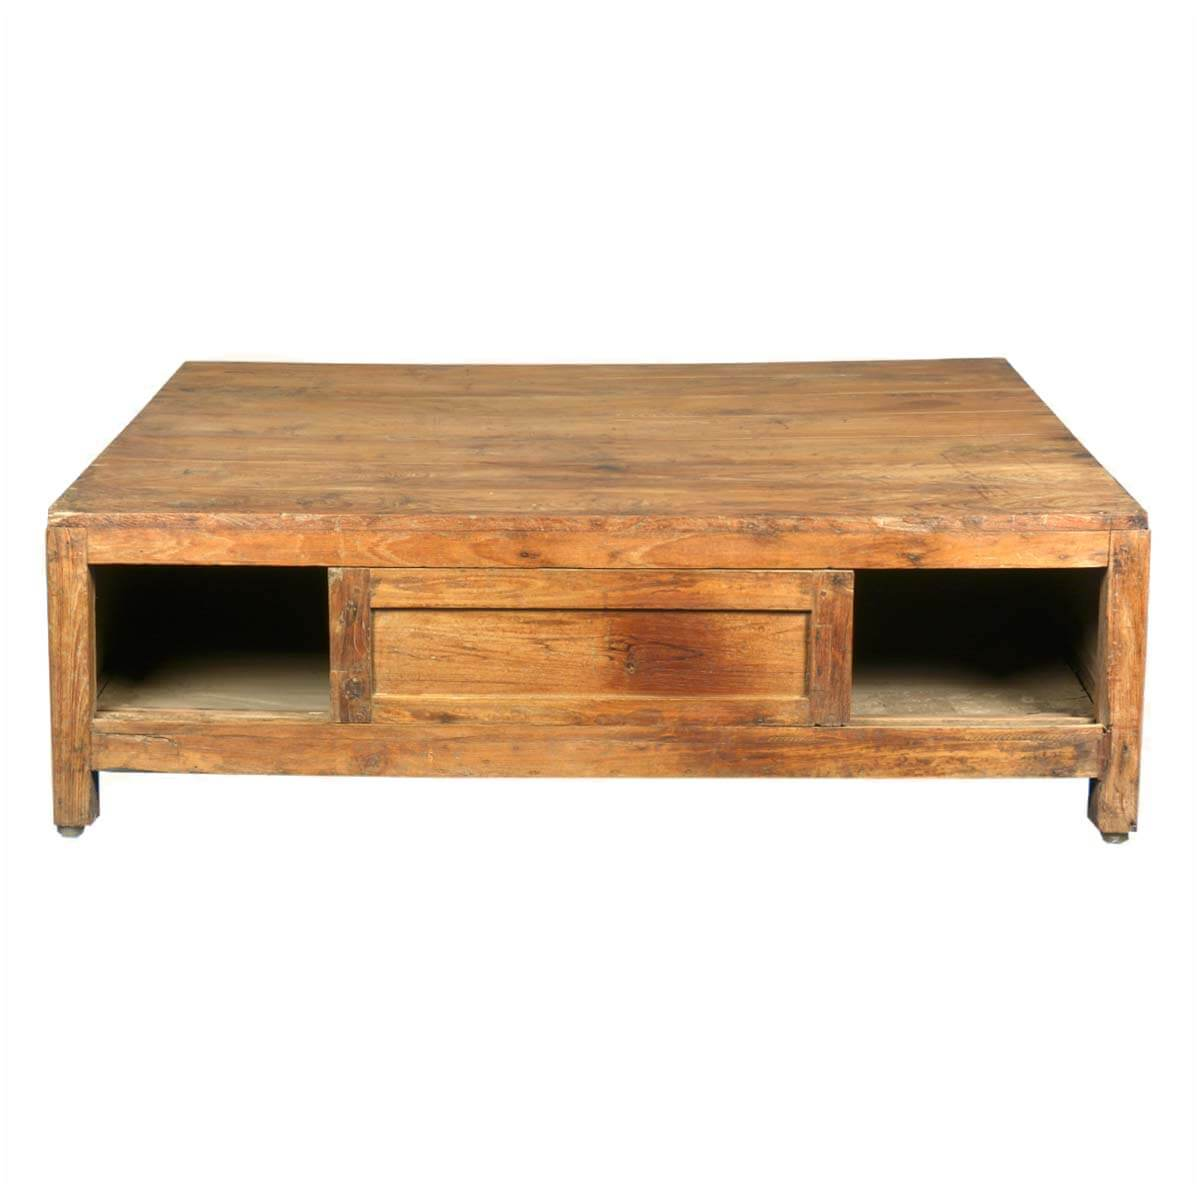 Handmade Solid Teak Wood Large Coffee Table With Storage